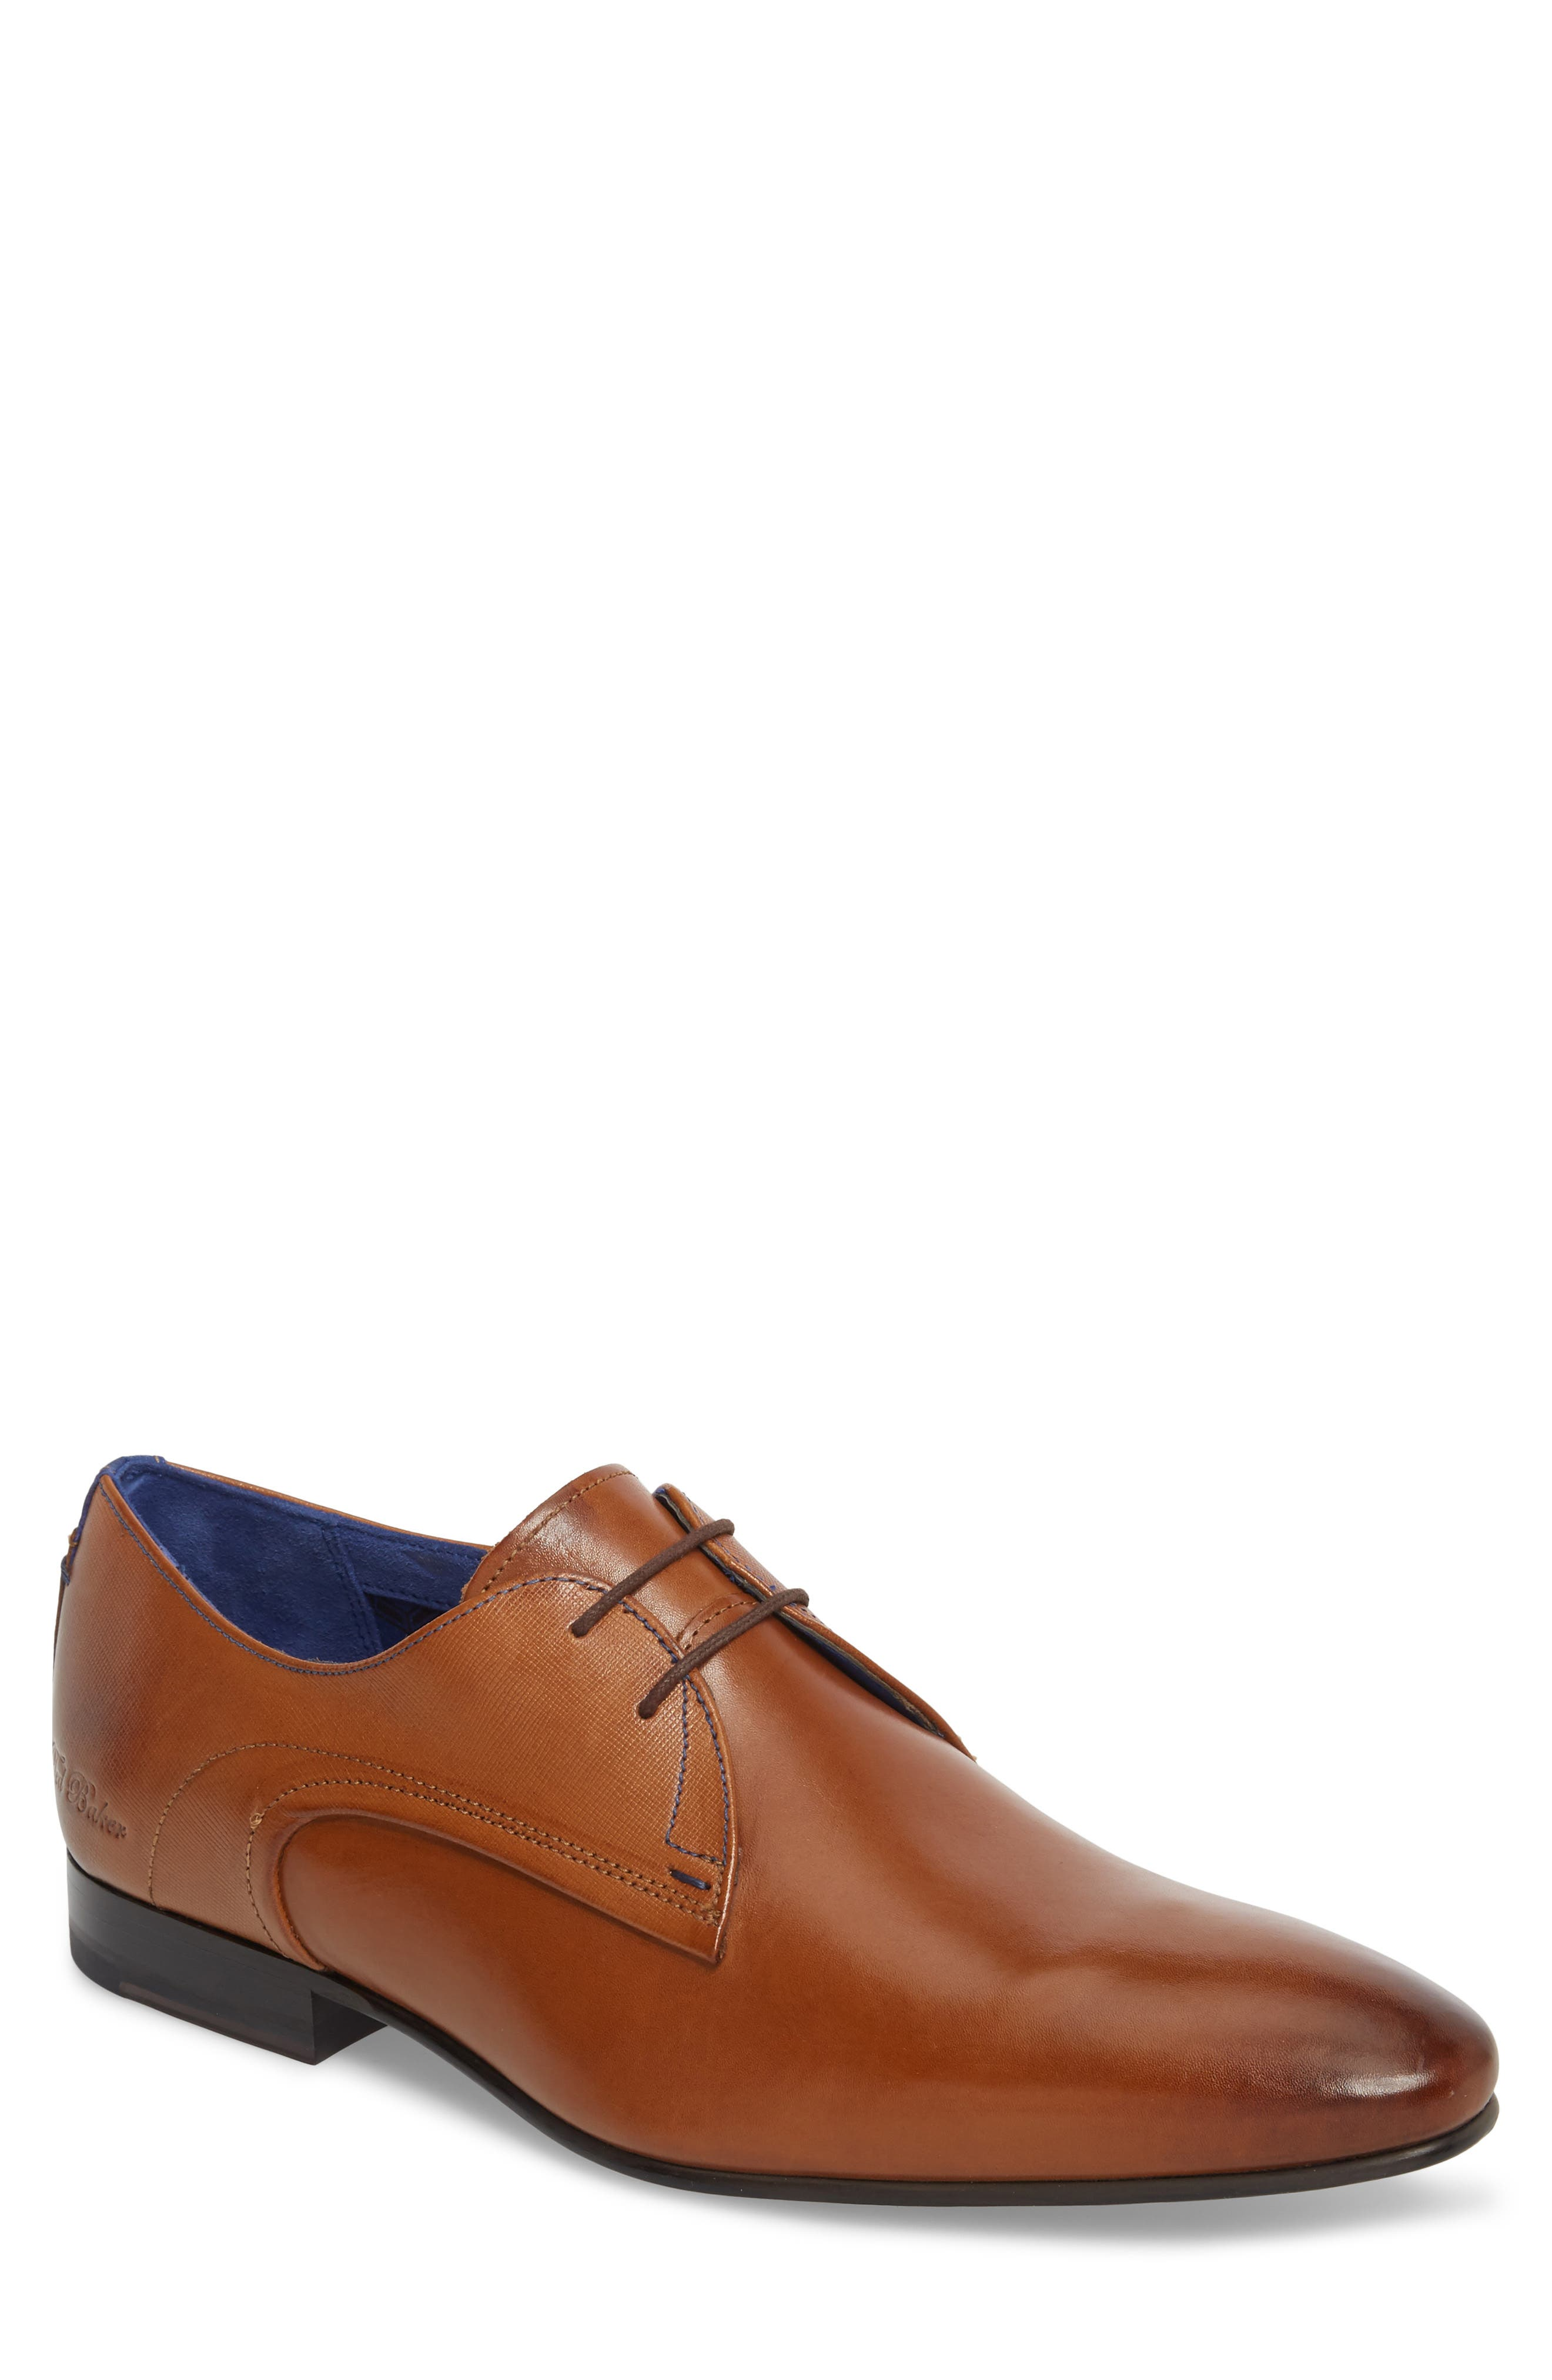 Alternate Image 1 Selected - Ted Baker London Peair Plain Toe Derby (Men)